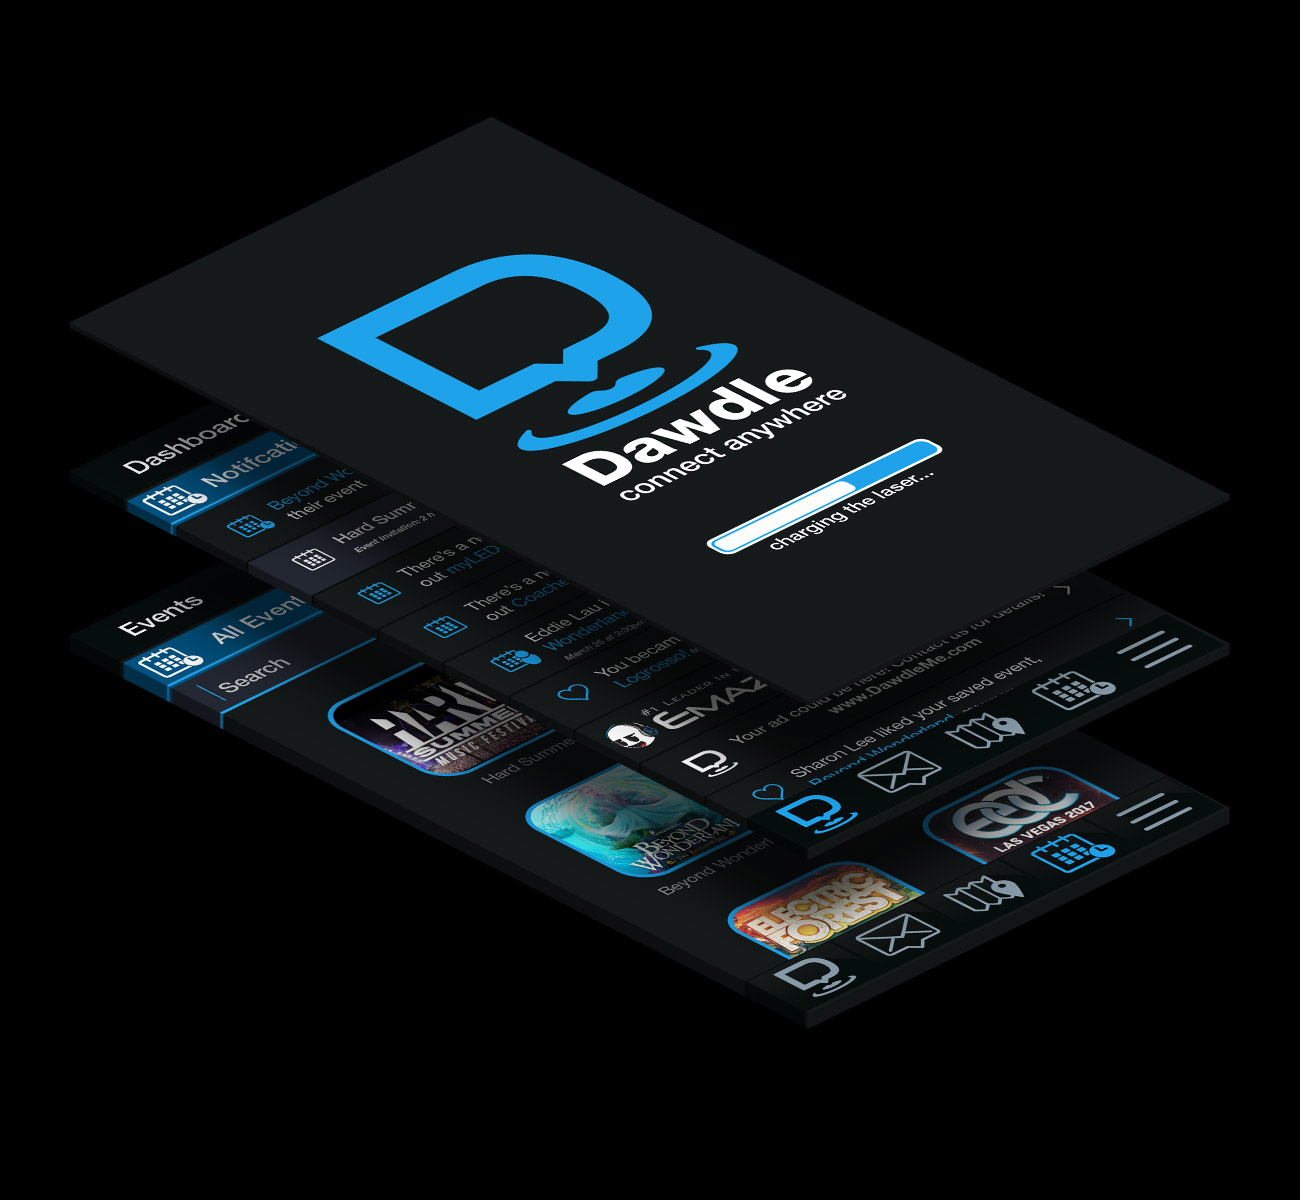 Dawdle dashboard and profile user interface design preview.